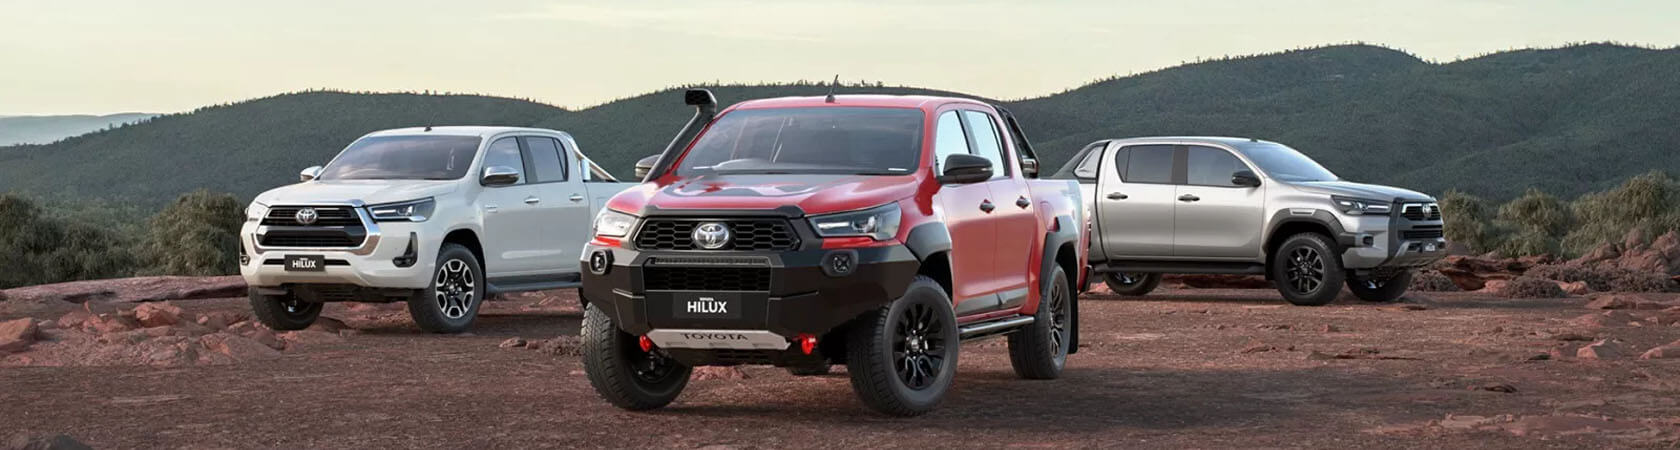 Peter Kittle Toyota - Para Hills West HiLux